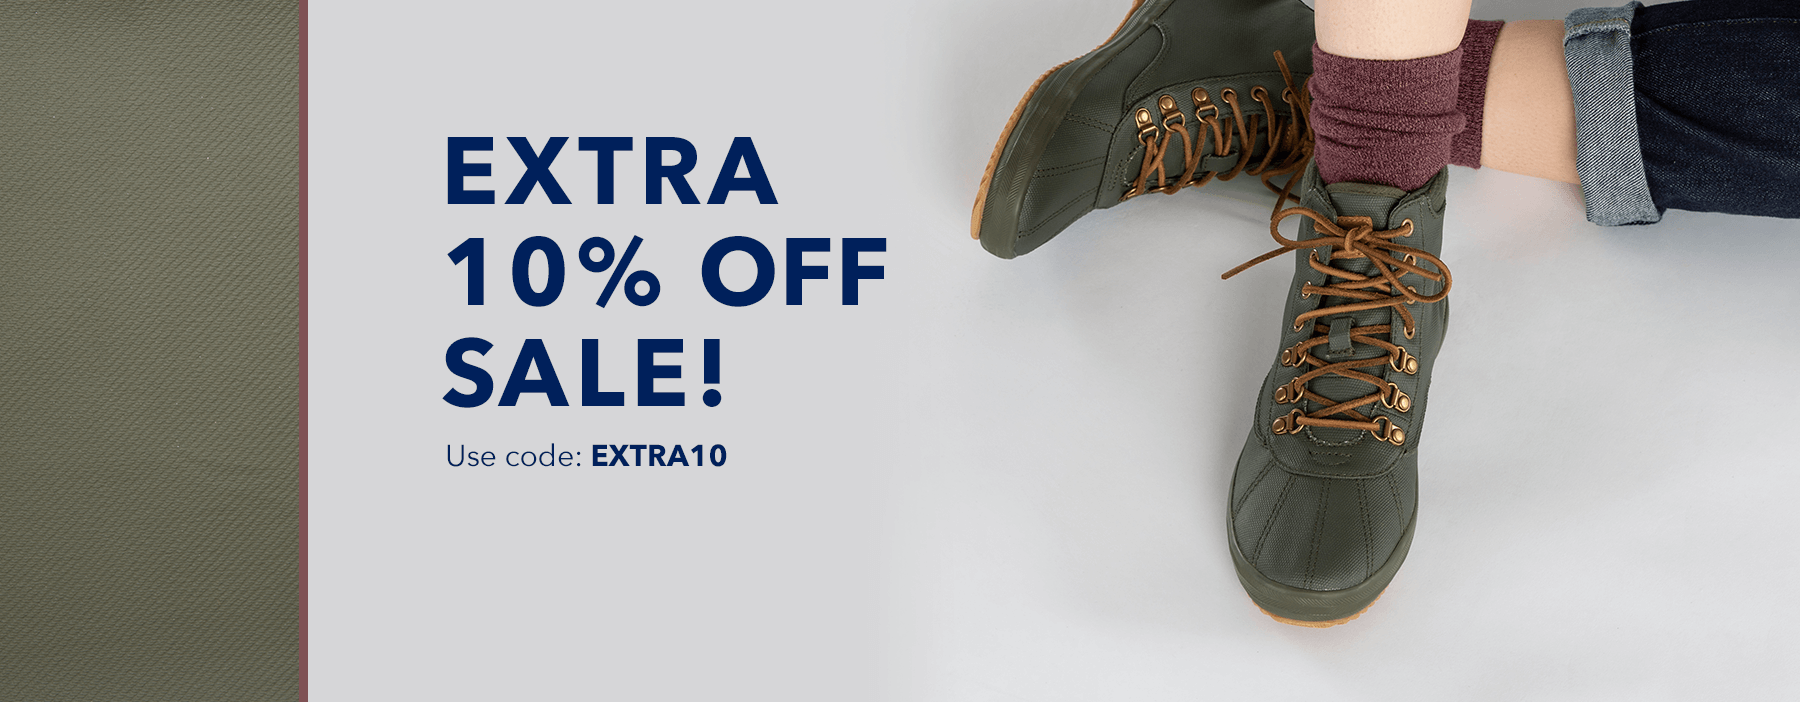 Extra 10% off sale! Use code: EXTRA20.